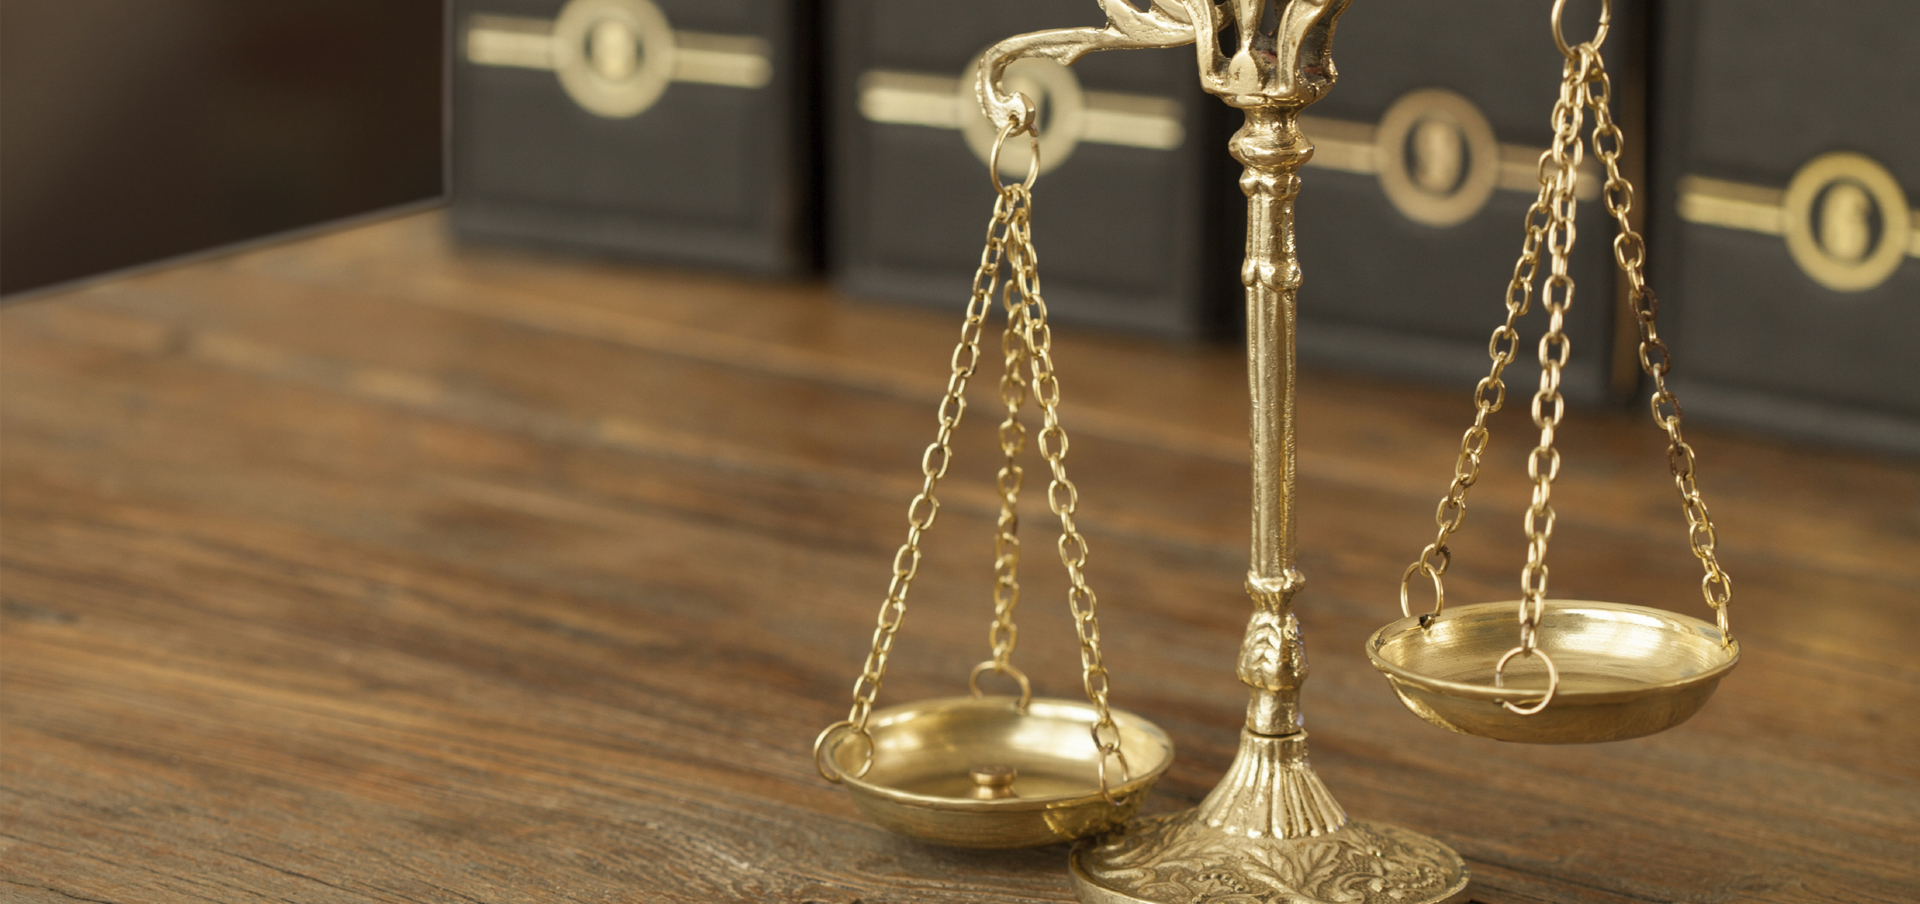 the three main components of the criminal justice system are law enforcement courts and corrections Courseconnect introduction to criminal justice introduces students to the criminal justice system and its three main components: law enforcement,  justice system.